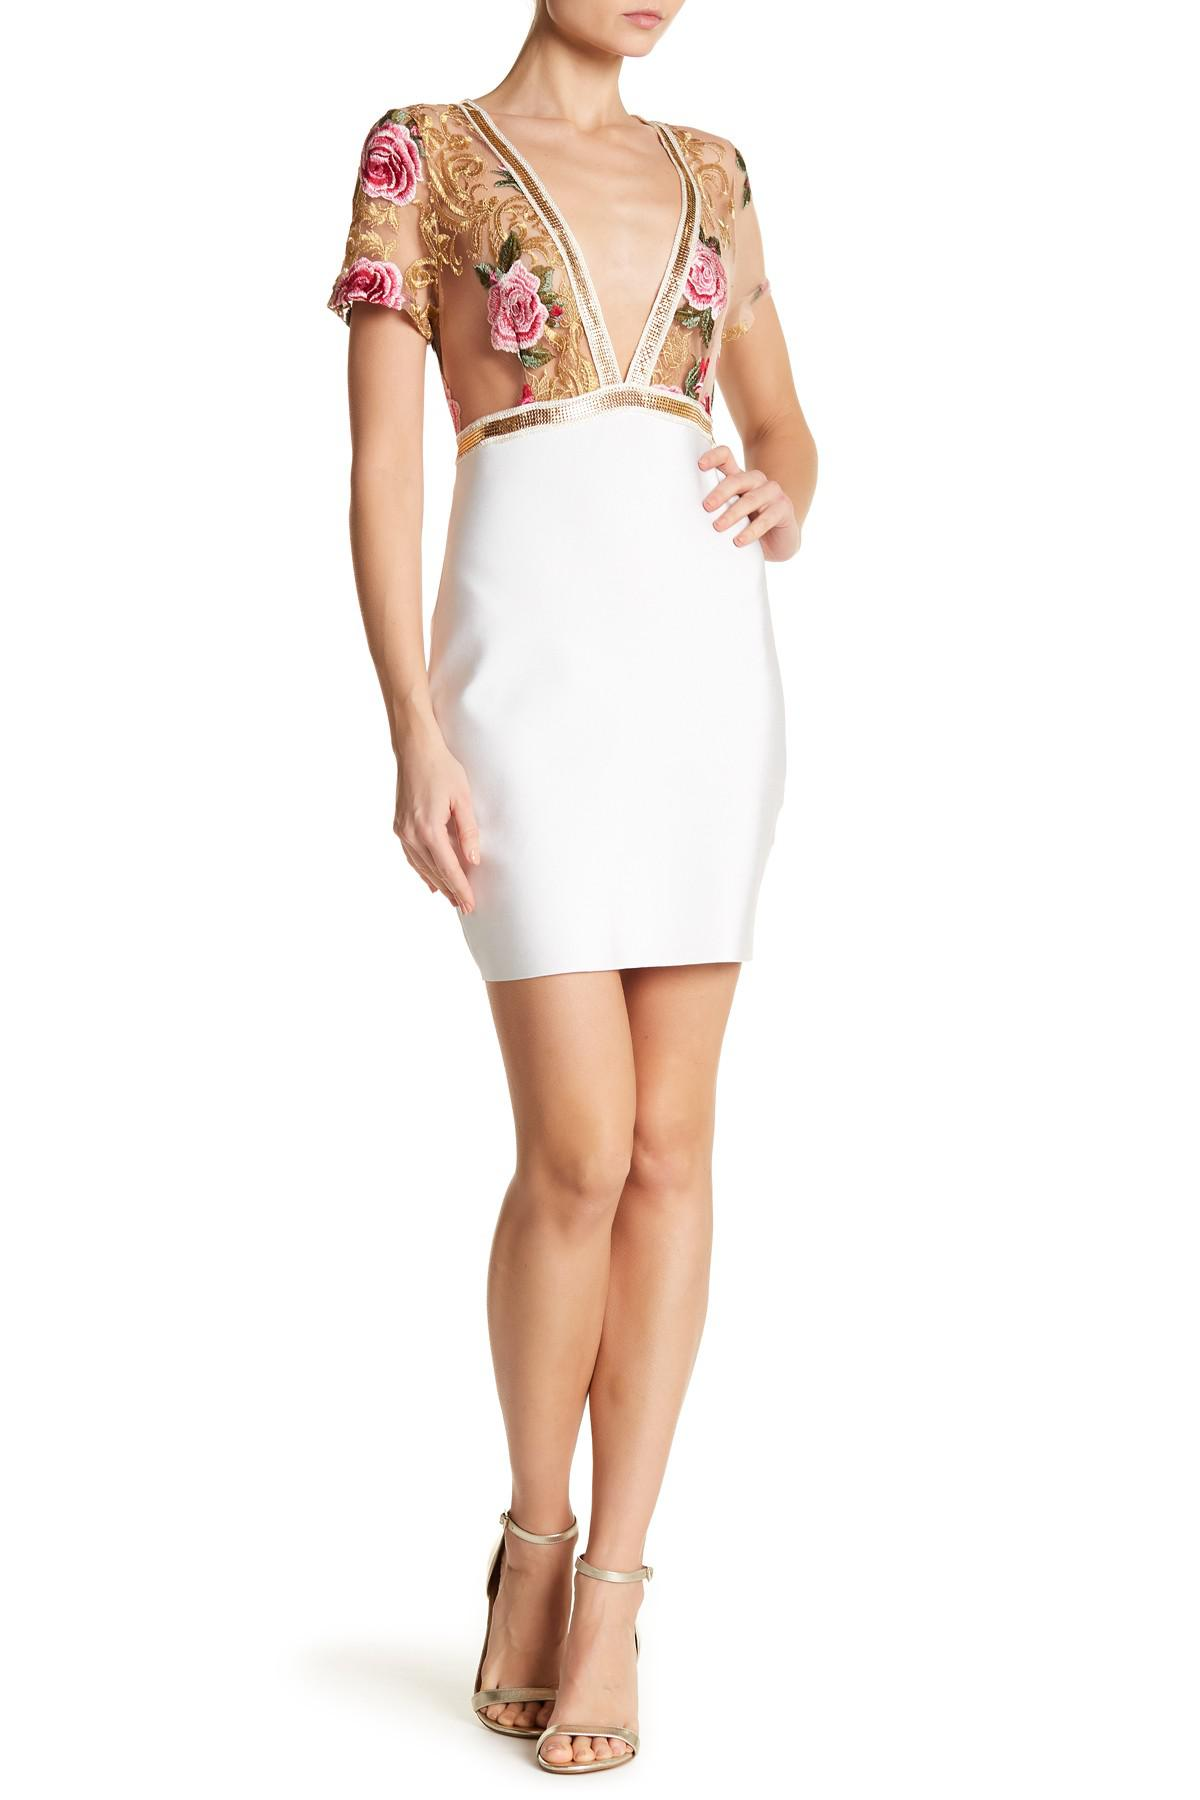 316c57ca97 Lyst - Wow Couture Floral Mesh Upper Dress in White